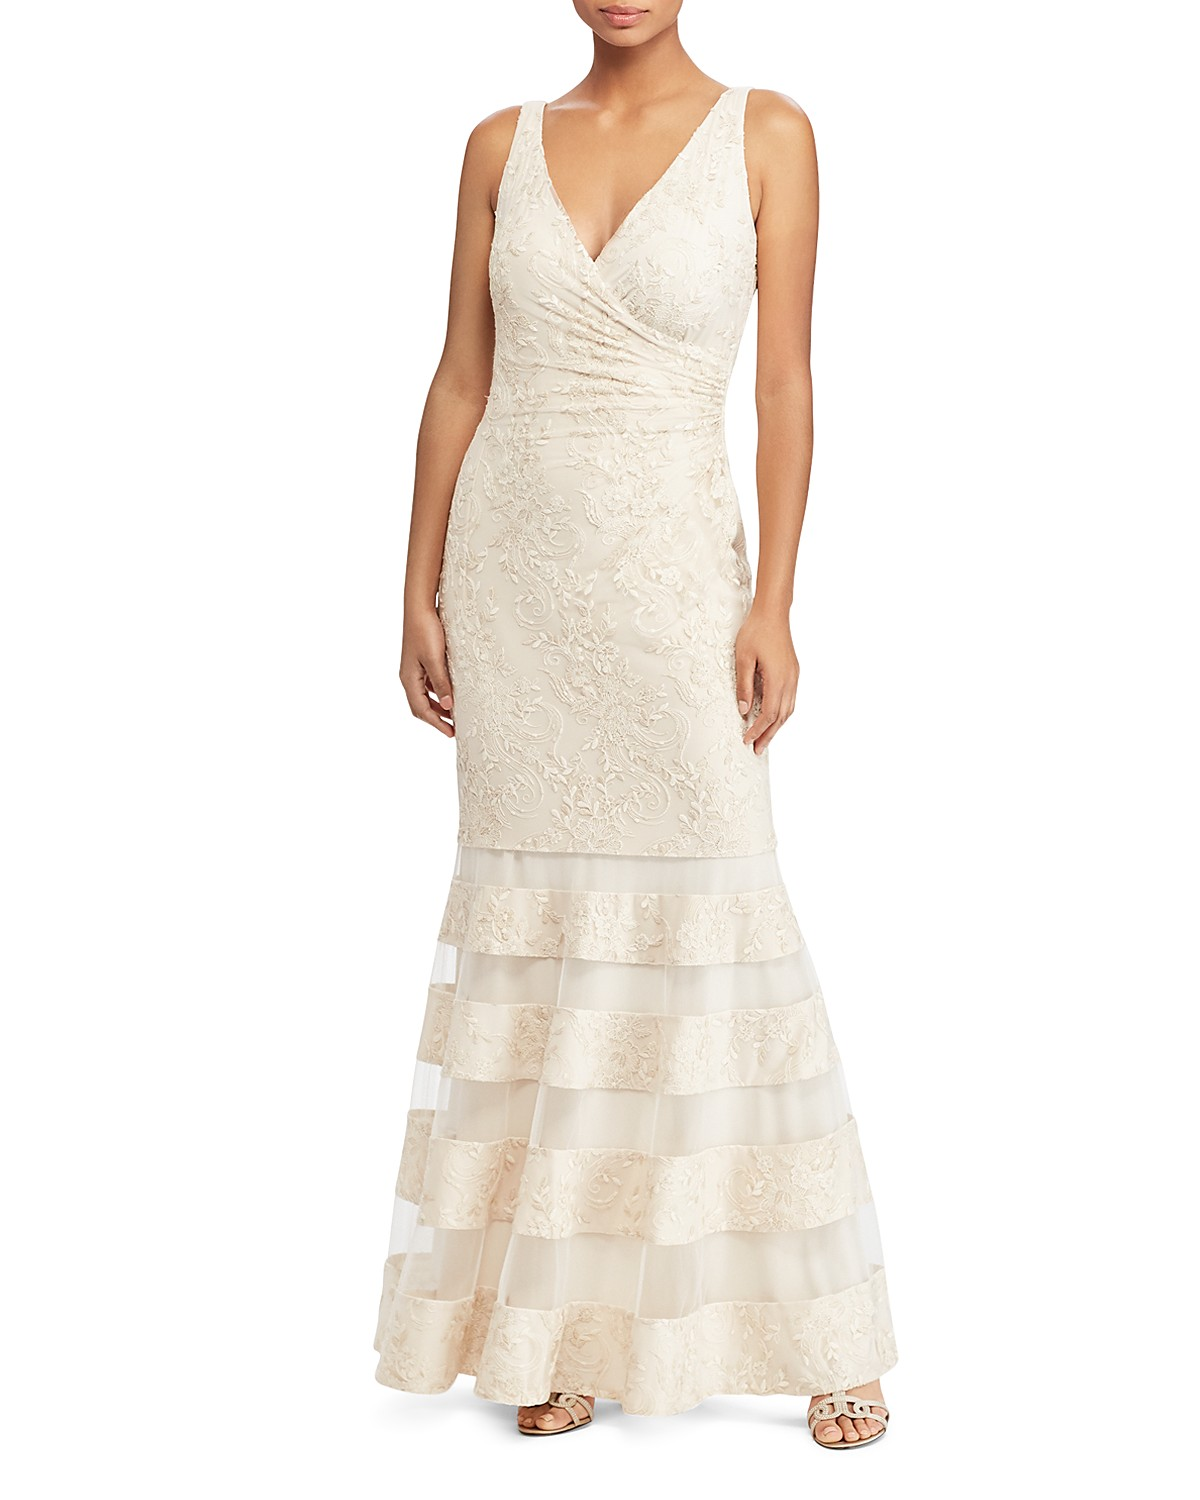 Lauren Ralph Lauren Lace Mermaid Gown - 100% Exclusive | Bloomingdale\'s